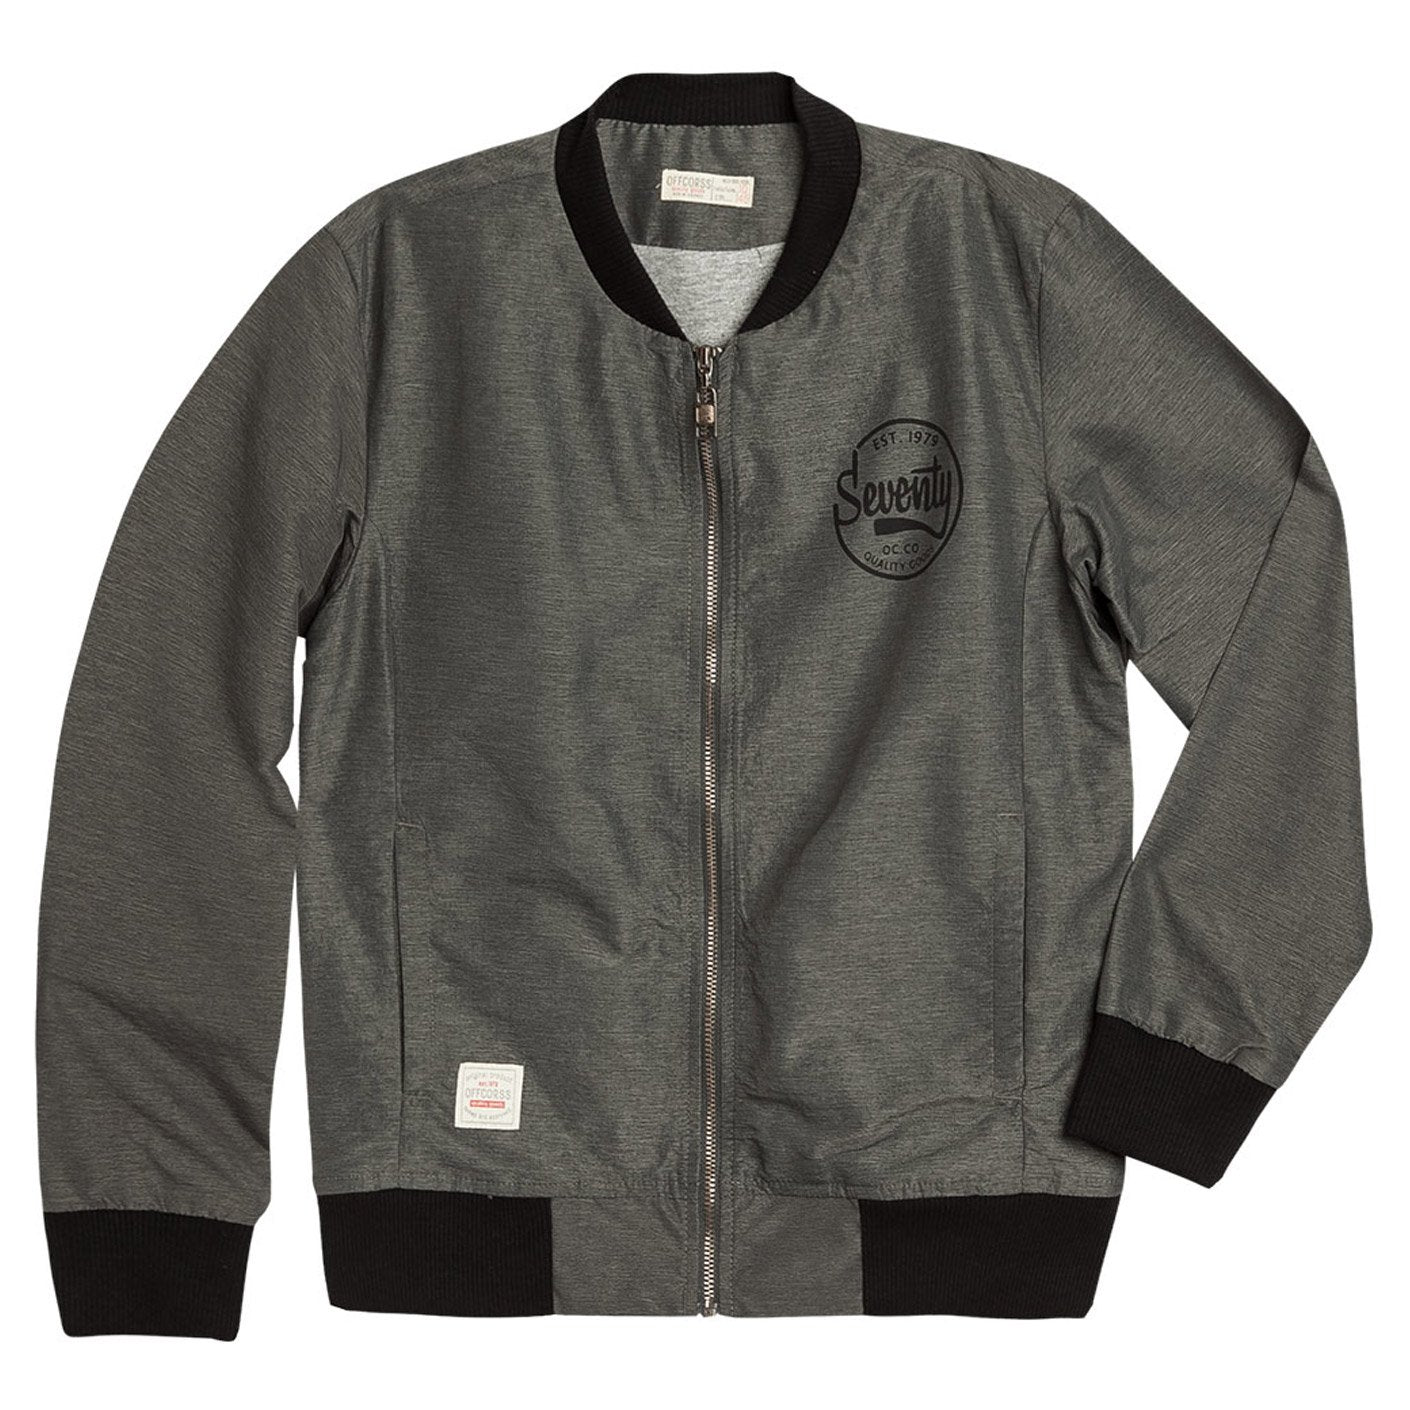 Light Stylish Jackets College